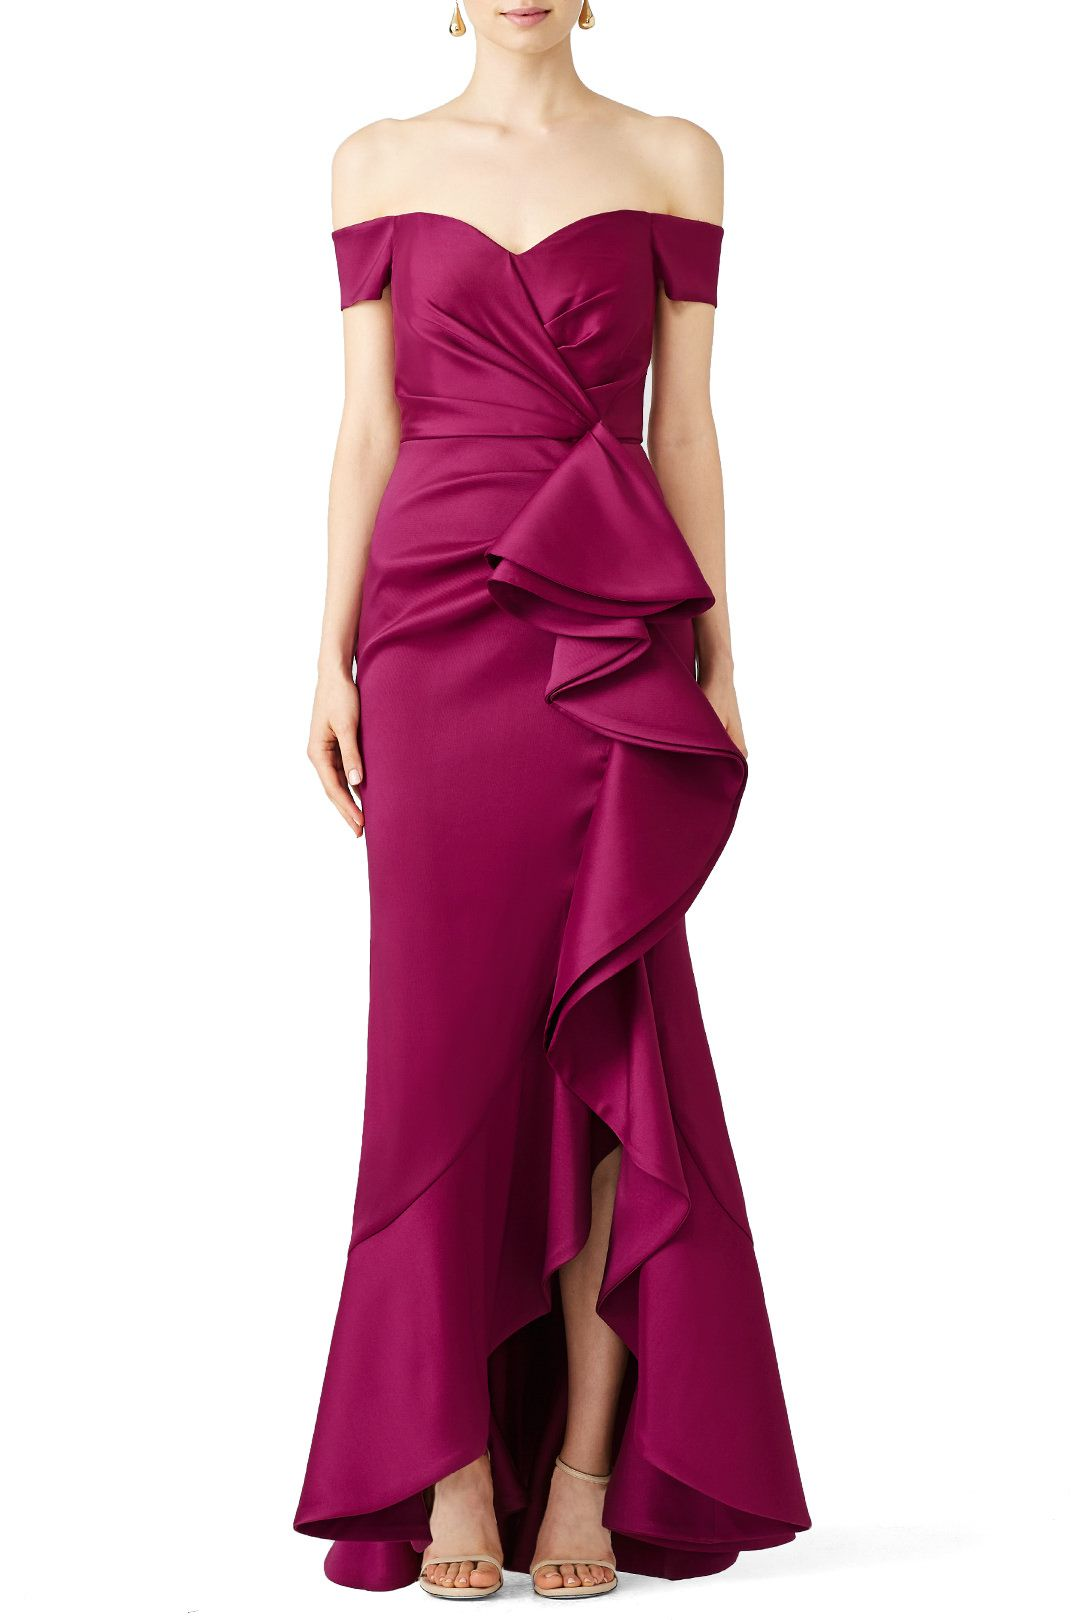 685e80c943a Rent Sangria Ruffle Gown by Badgley Mischka for  140 only at Rent the  Runway.